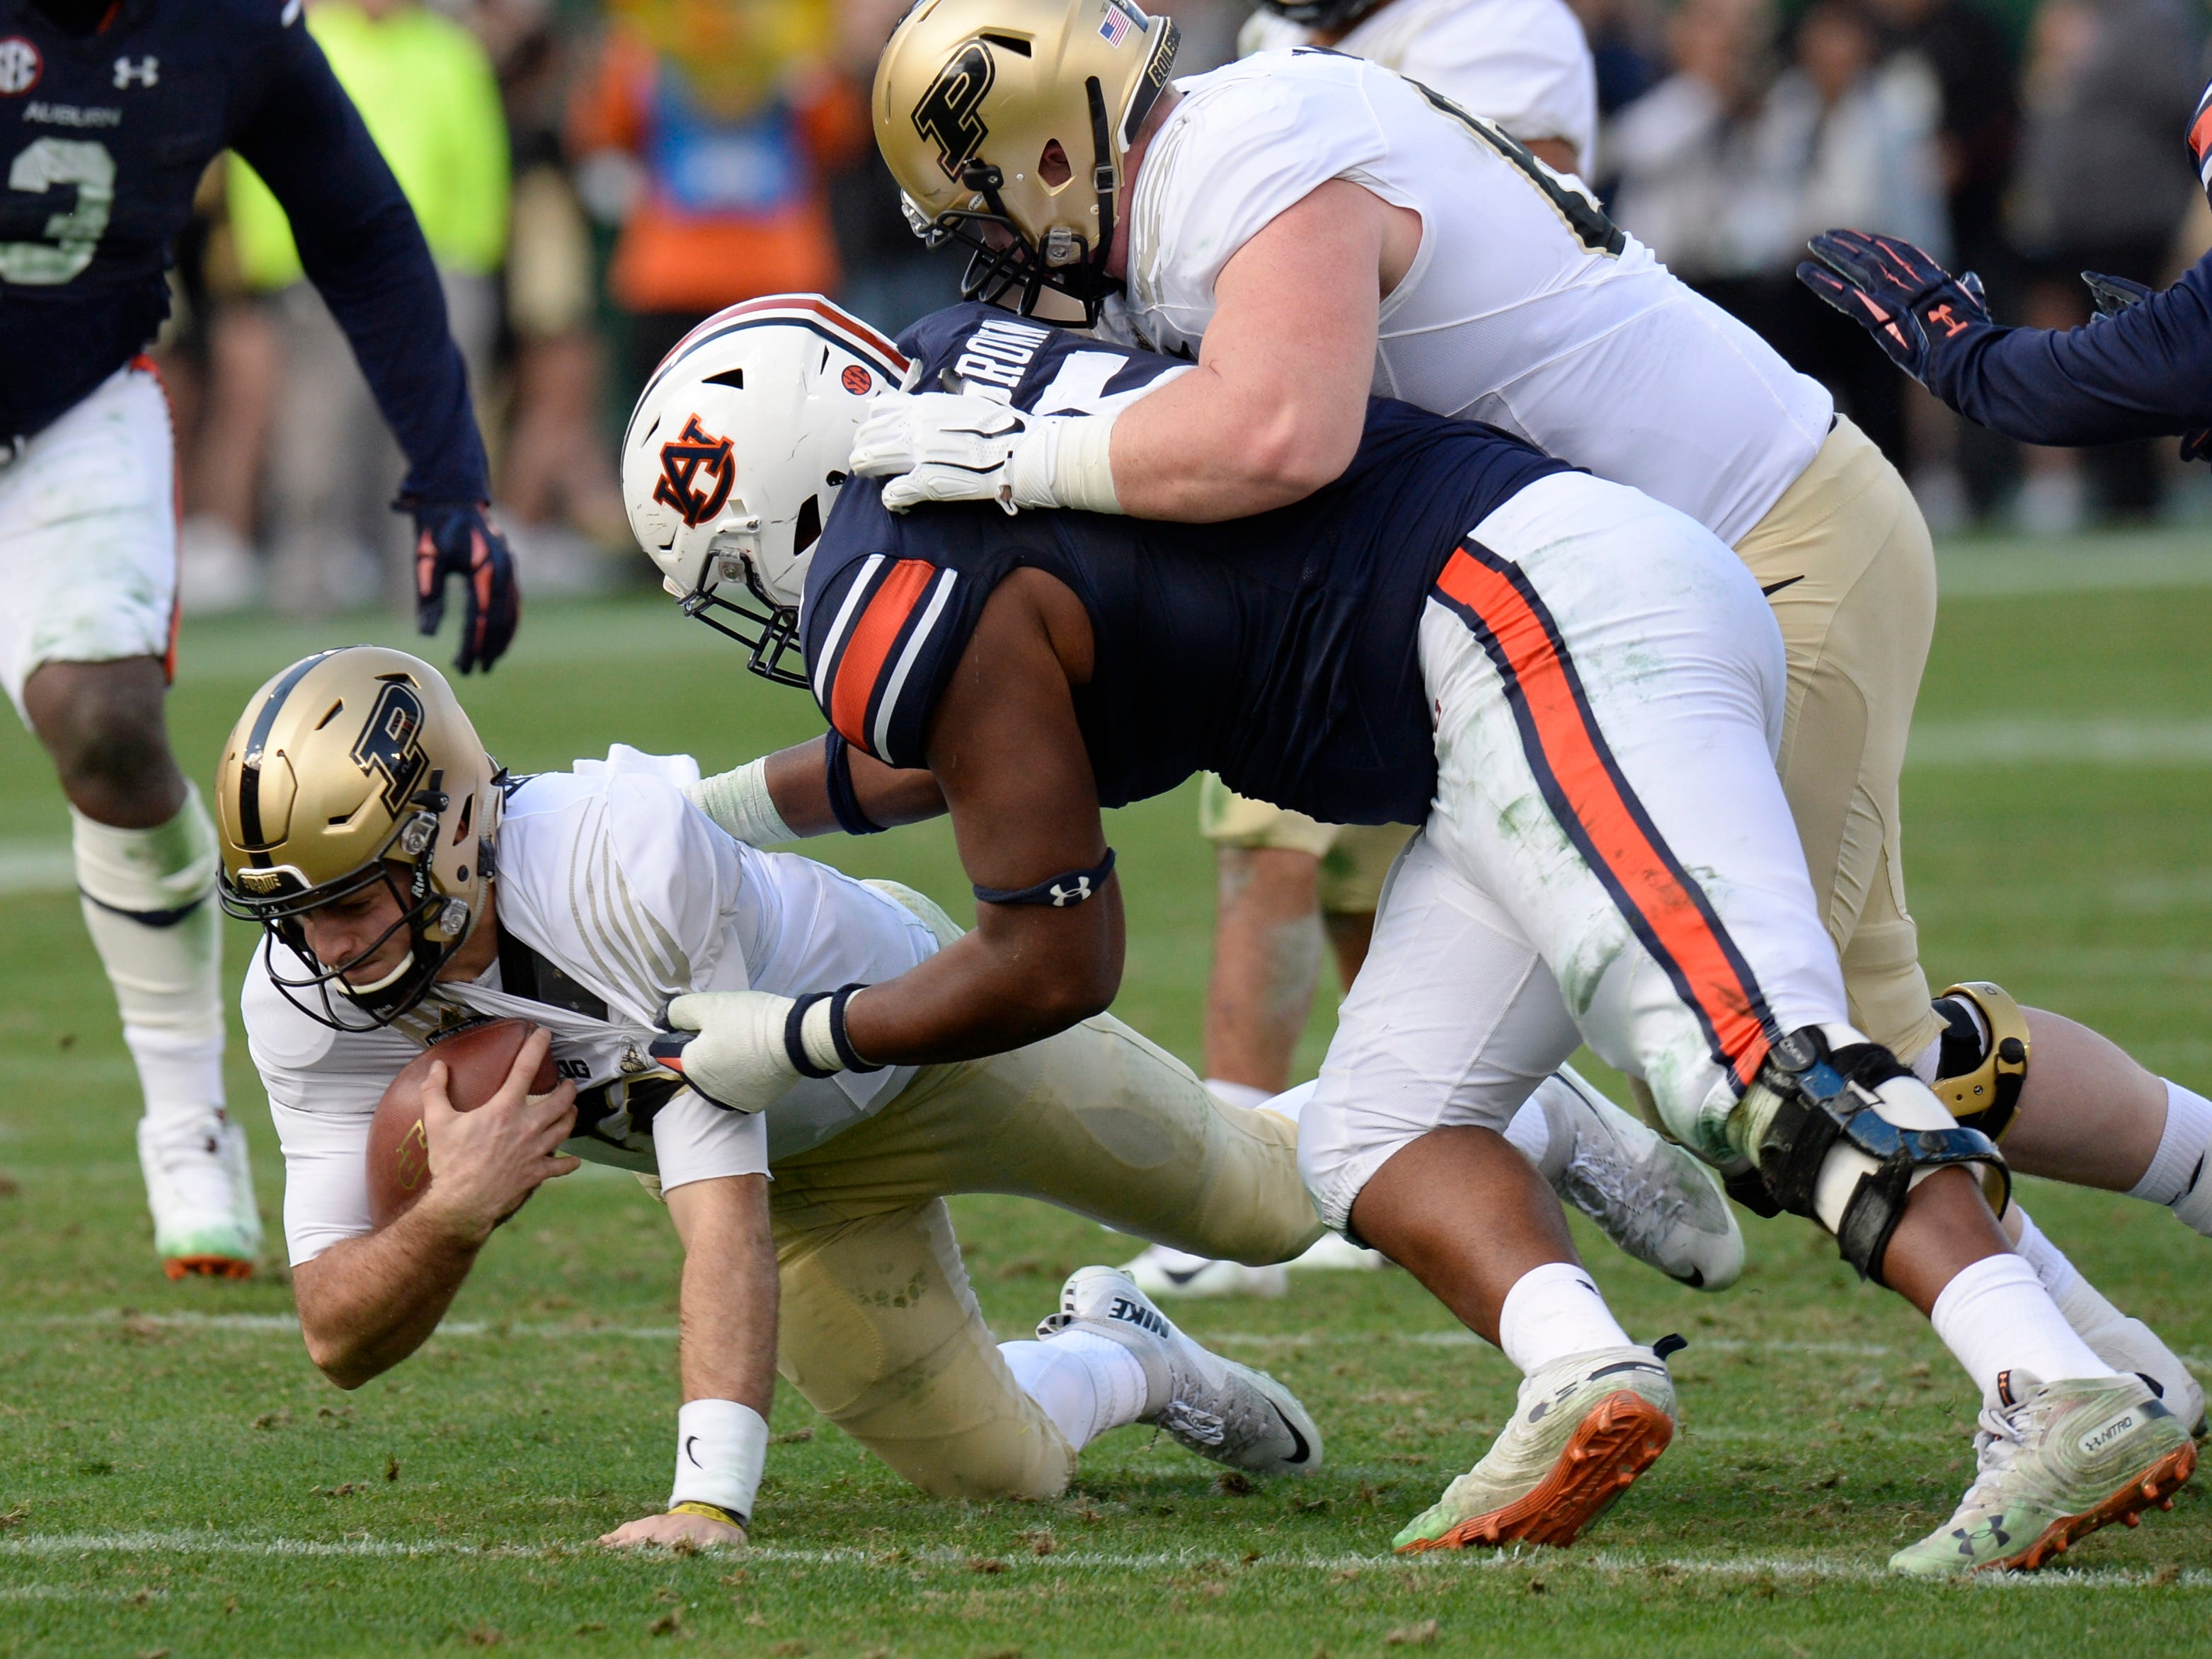 Auburn defensive lineman Derrick Brown (5) sacks Purdue quarterback David Blough (11) in the second quarter of the Music City Bowl NCAA college football game Friday, Dec. 28, 2018, at Nissan Stadium in Nashville, Tenn.